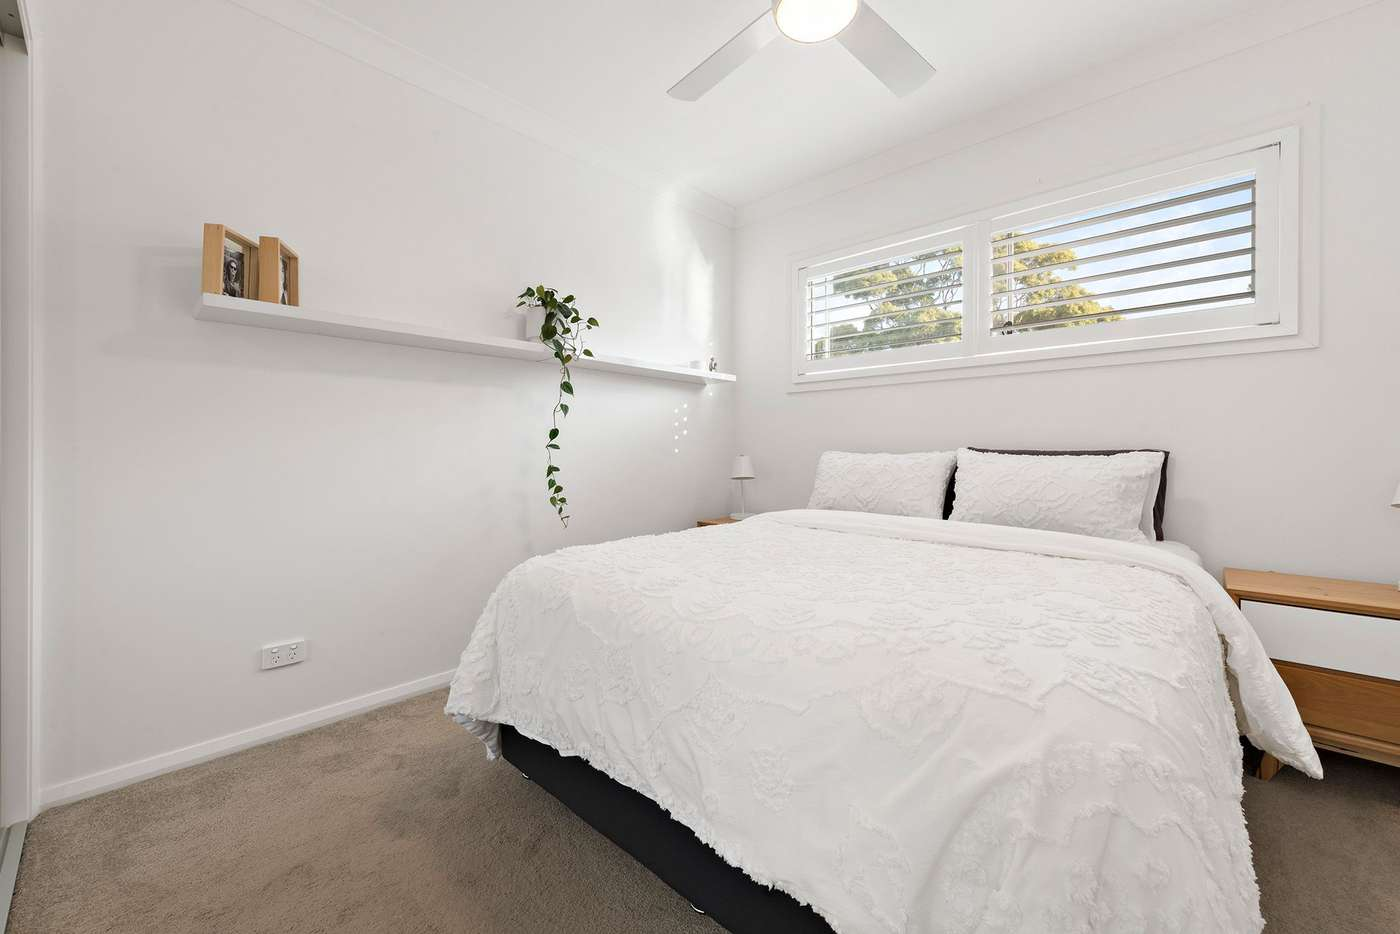 Sixth view of Homely townhouse listing, 8/97 Wallsend Street, Kahibah NSW 2290